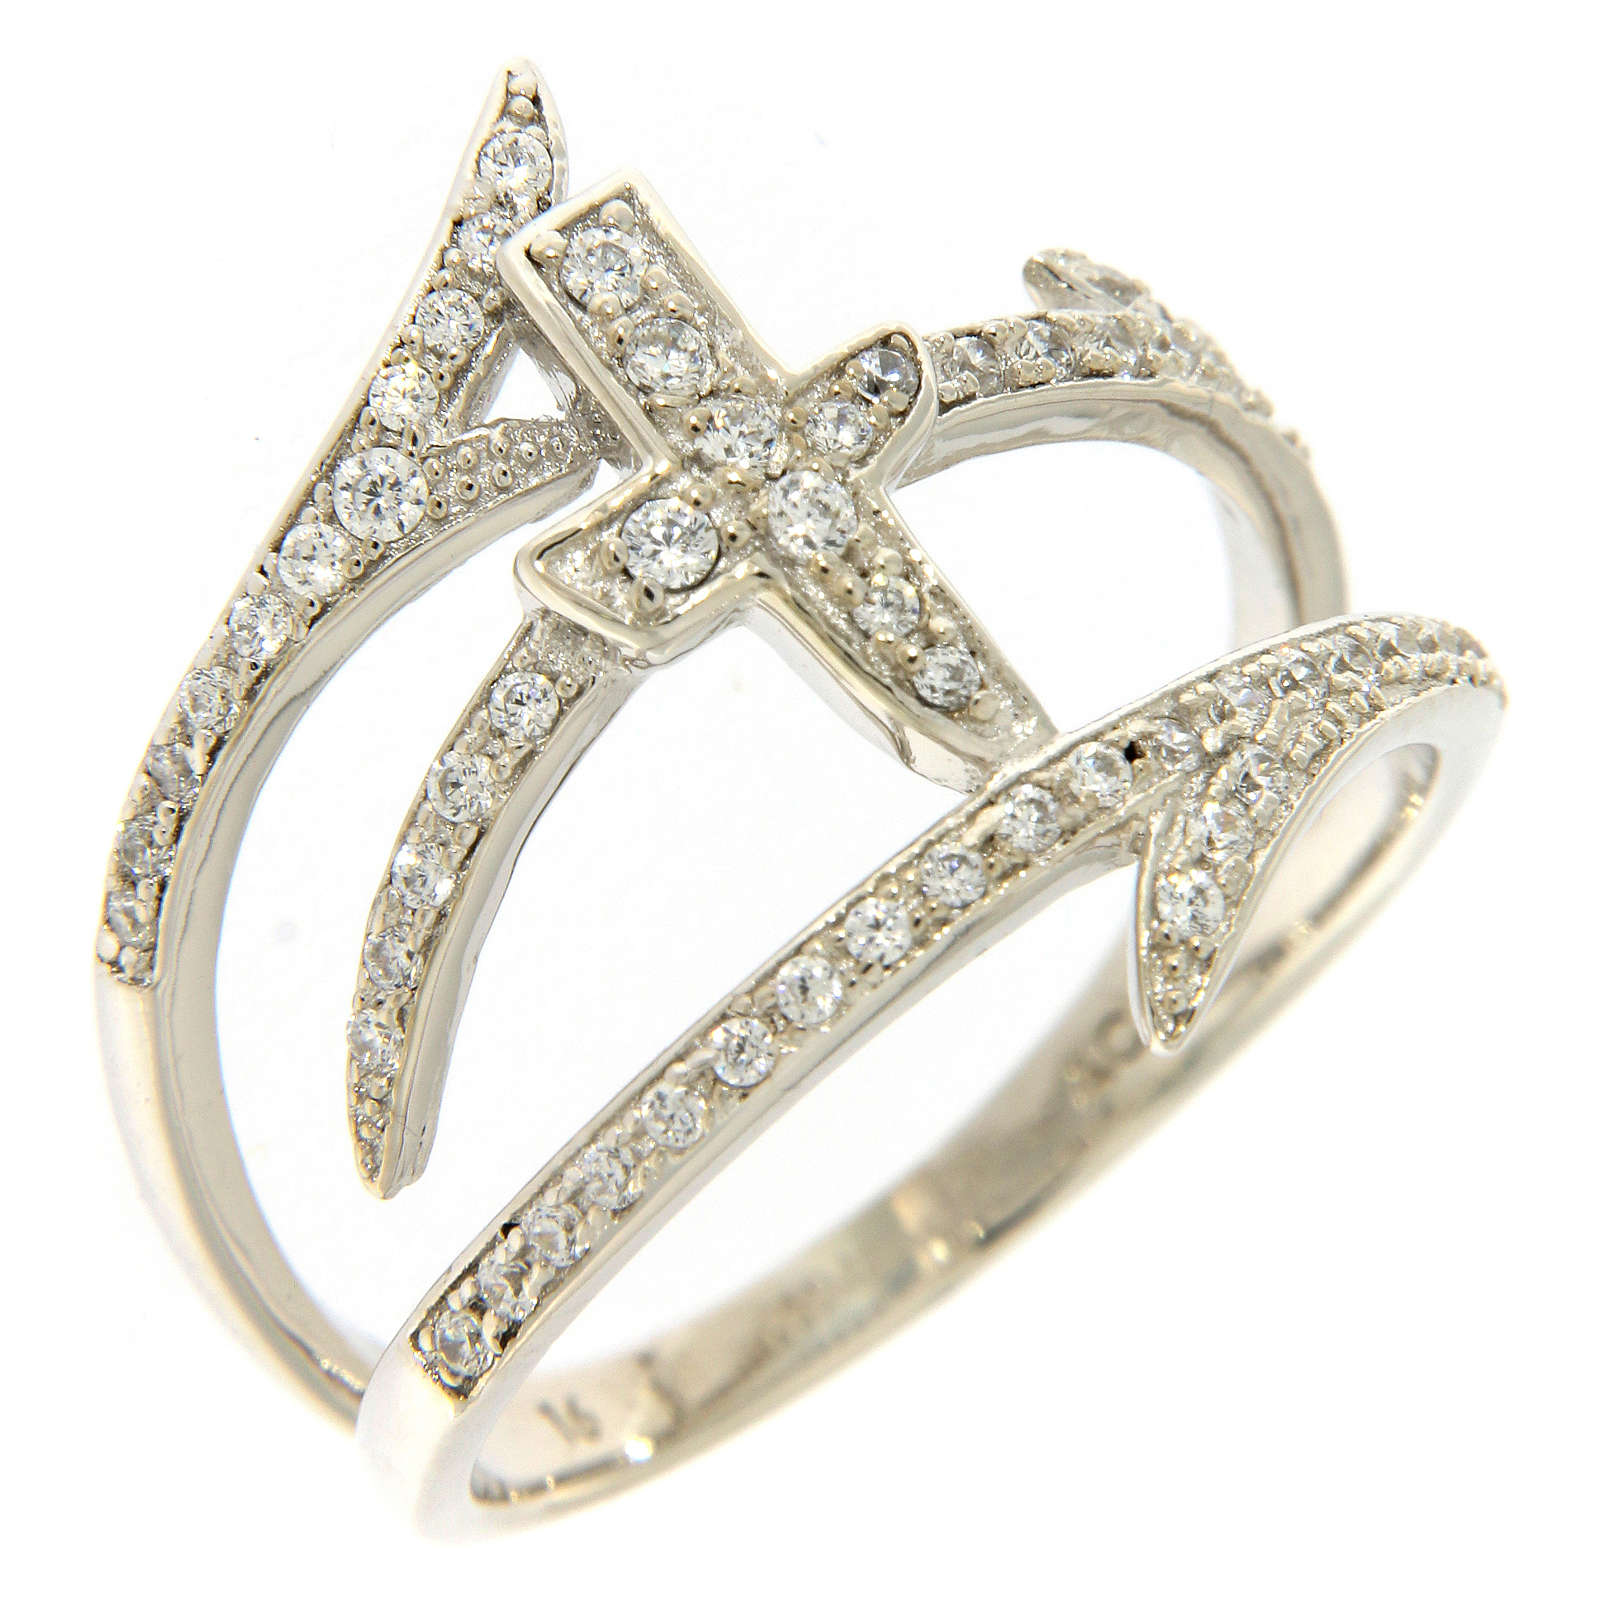 AMEN ring with crosses and thorns in 925 silver with rhinestones 3